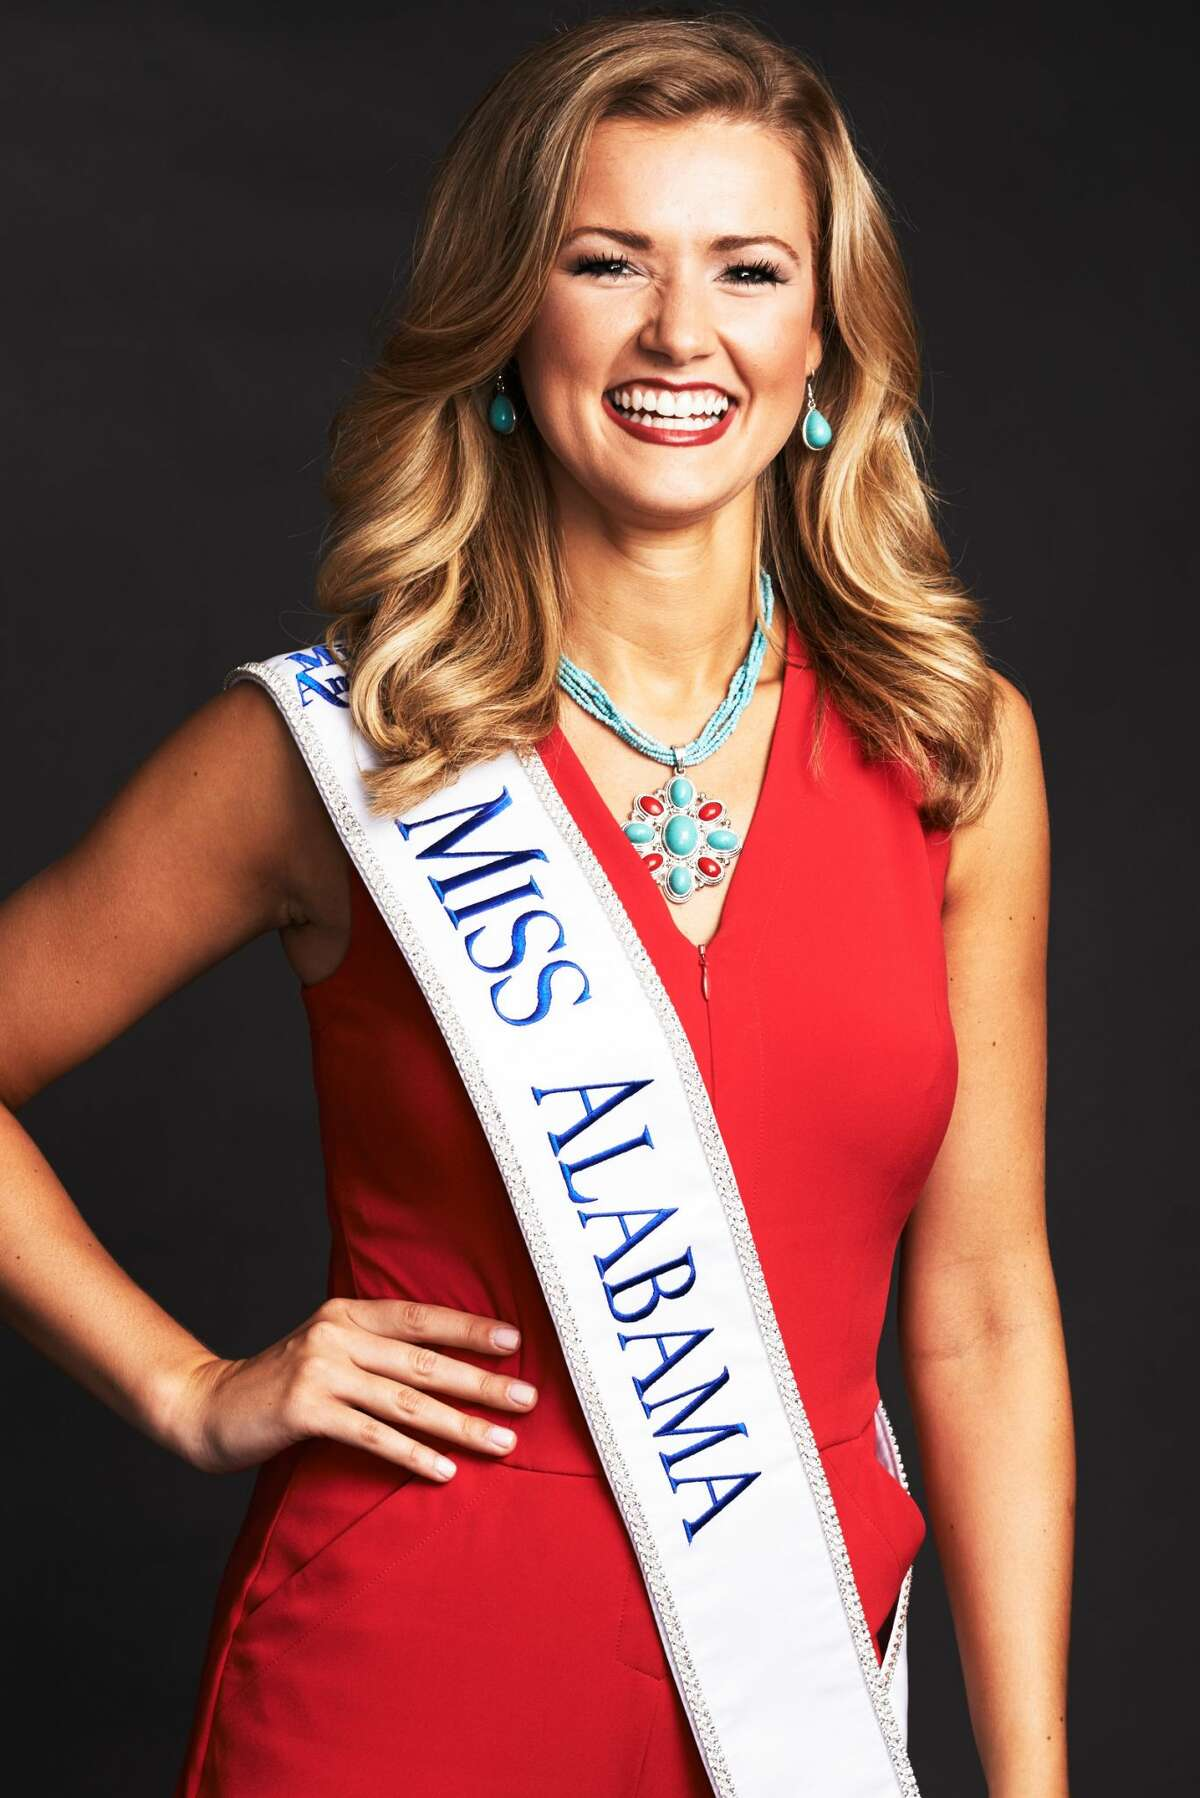 Miss Alabama 2016 Hayley Barber Talent: Tap Dance Platform: Sight for Small Eyes - Advocacy for Comprehensive Eye Examinations at a Young Age, and Fundraising for Children with Low Vision